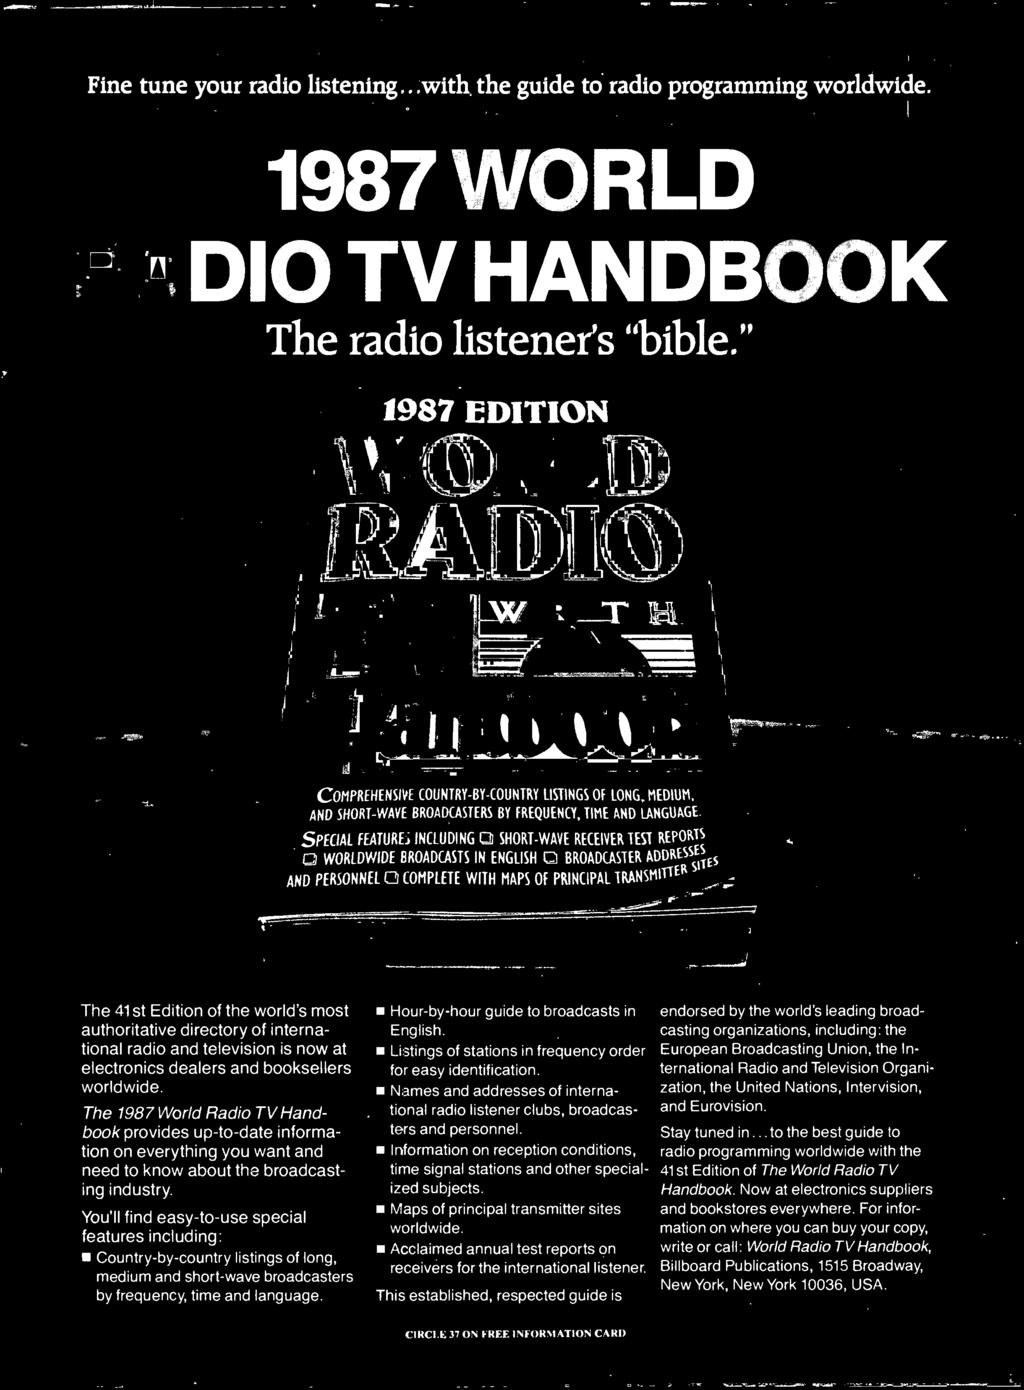 Monitoring Scanner And Shortwave The Thrill Excitement Of Tv Distribution System Diagram Moreover Winnebago Wiring Diagrams 1987 World Radio Handbook Provides Up To Date Information On